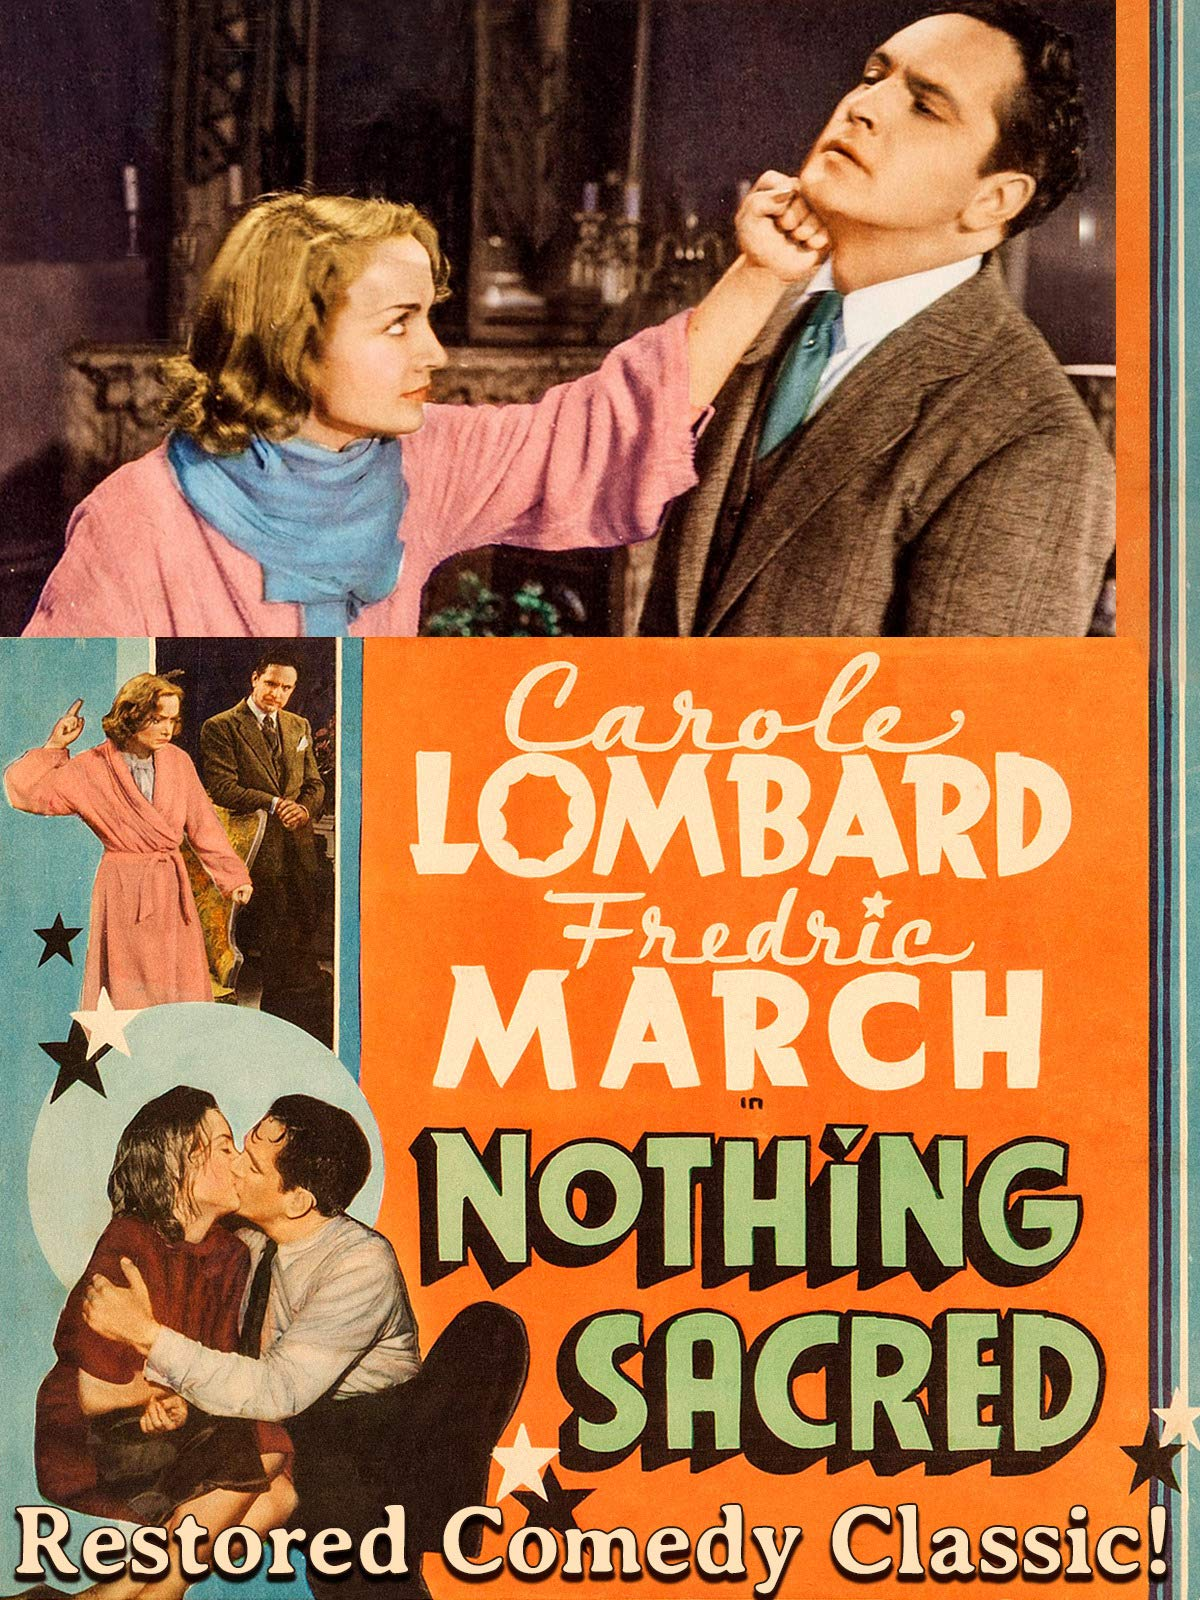 Nothing Sacred - Carole Lombard, Fredric March, Restored Comedy Classic!